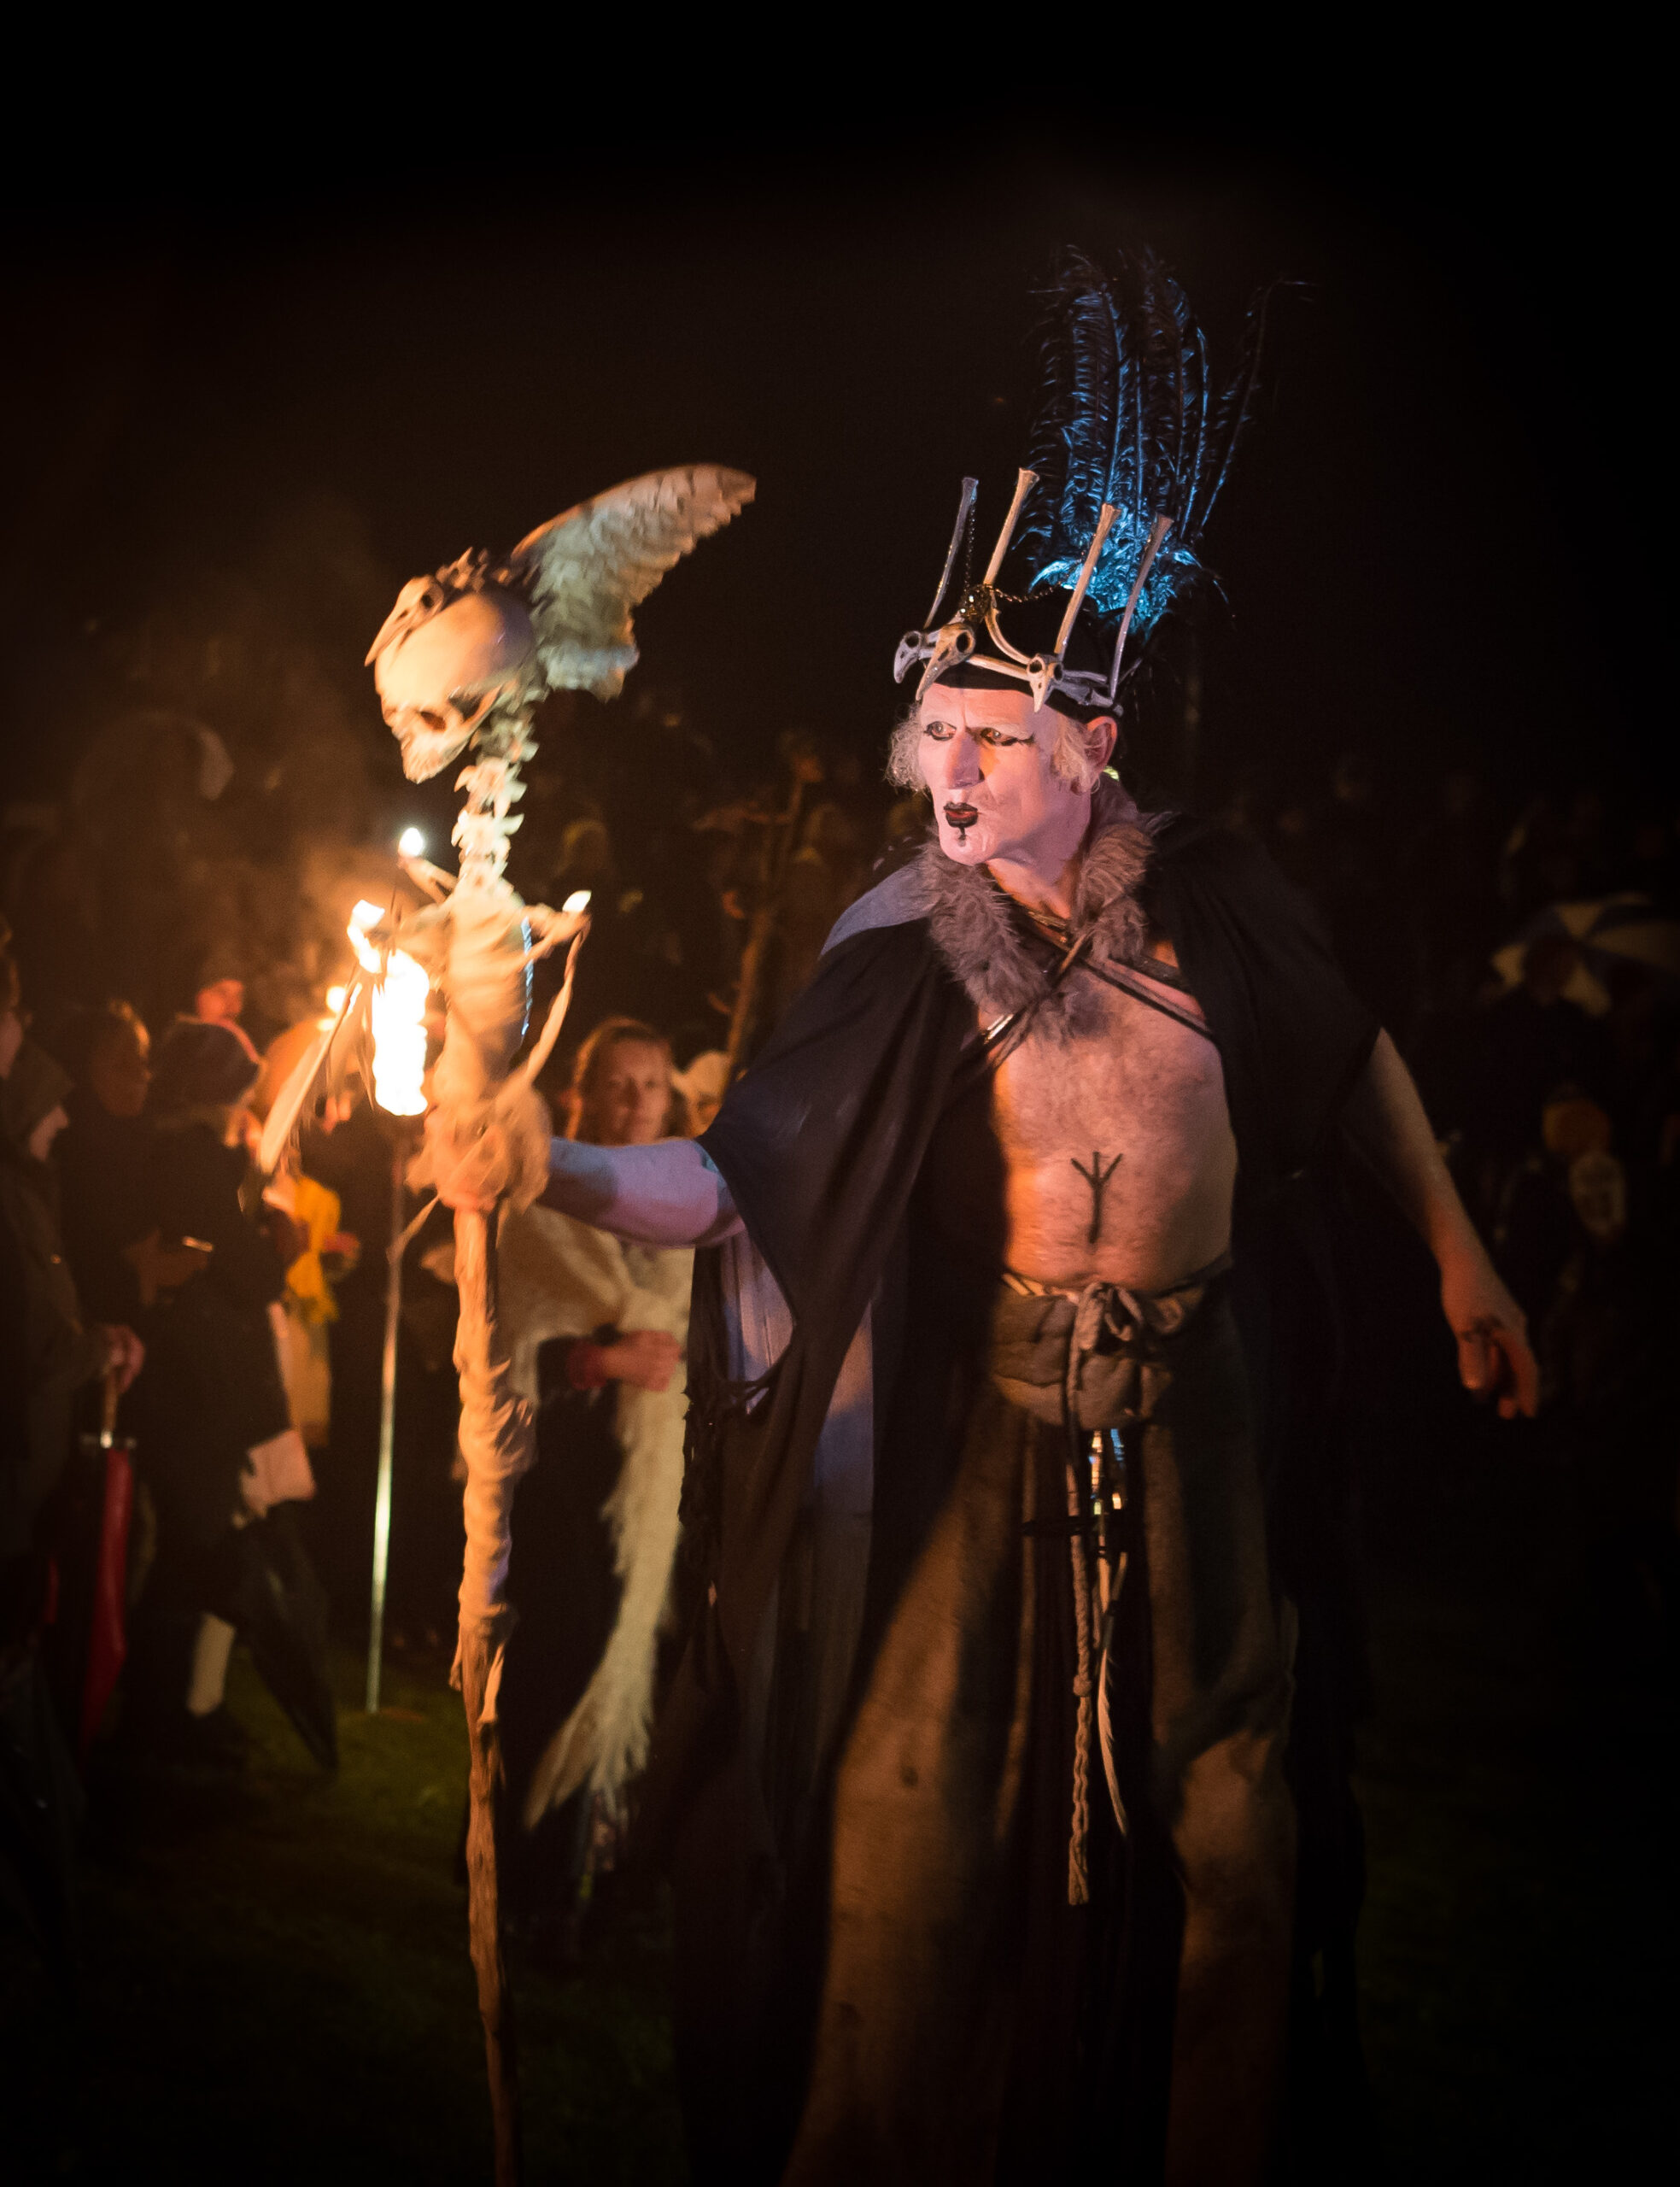 High Priest at WinterWild Festival  Image Credit - Ray Yeo